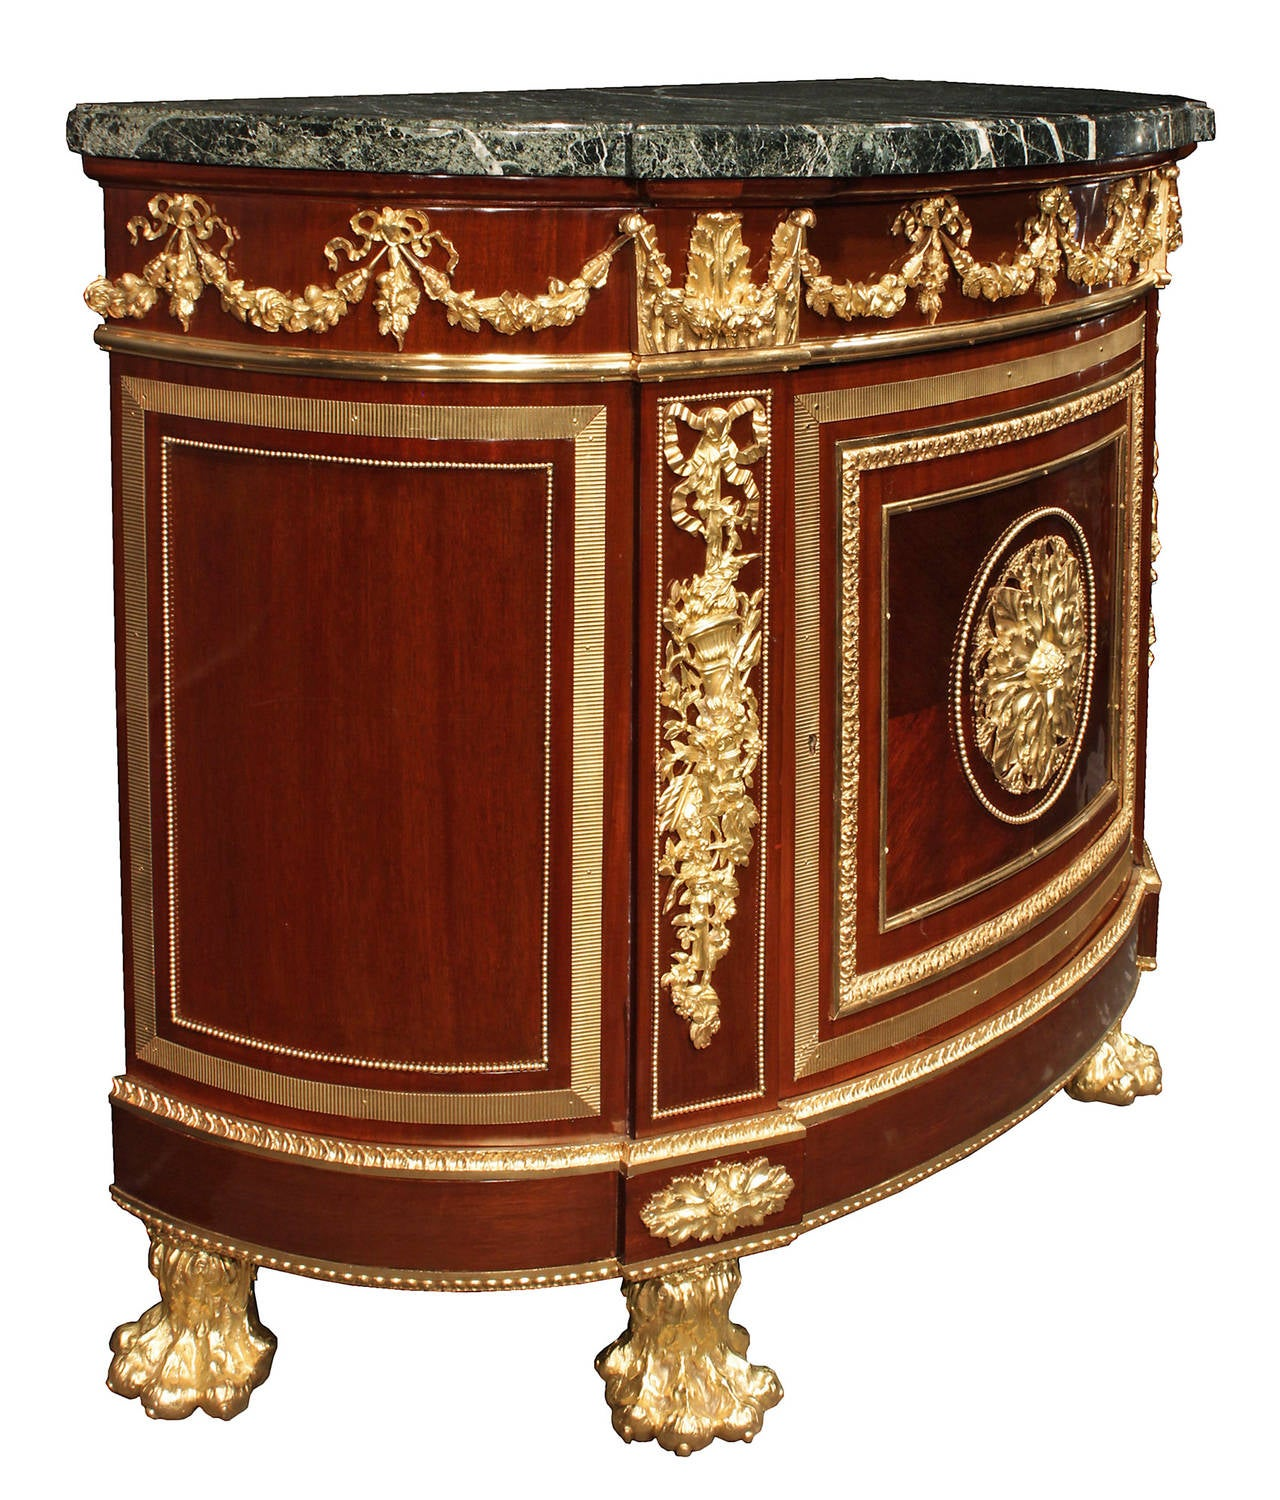 french 19th century louis xvi style mahogany and ormolu commode une porte at 1stdibs. Black Bedroom Furniture Sets. Home Design Ideas